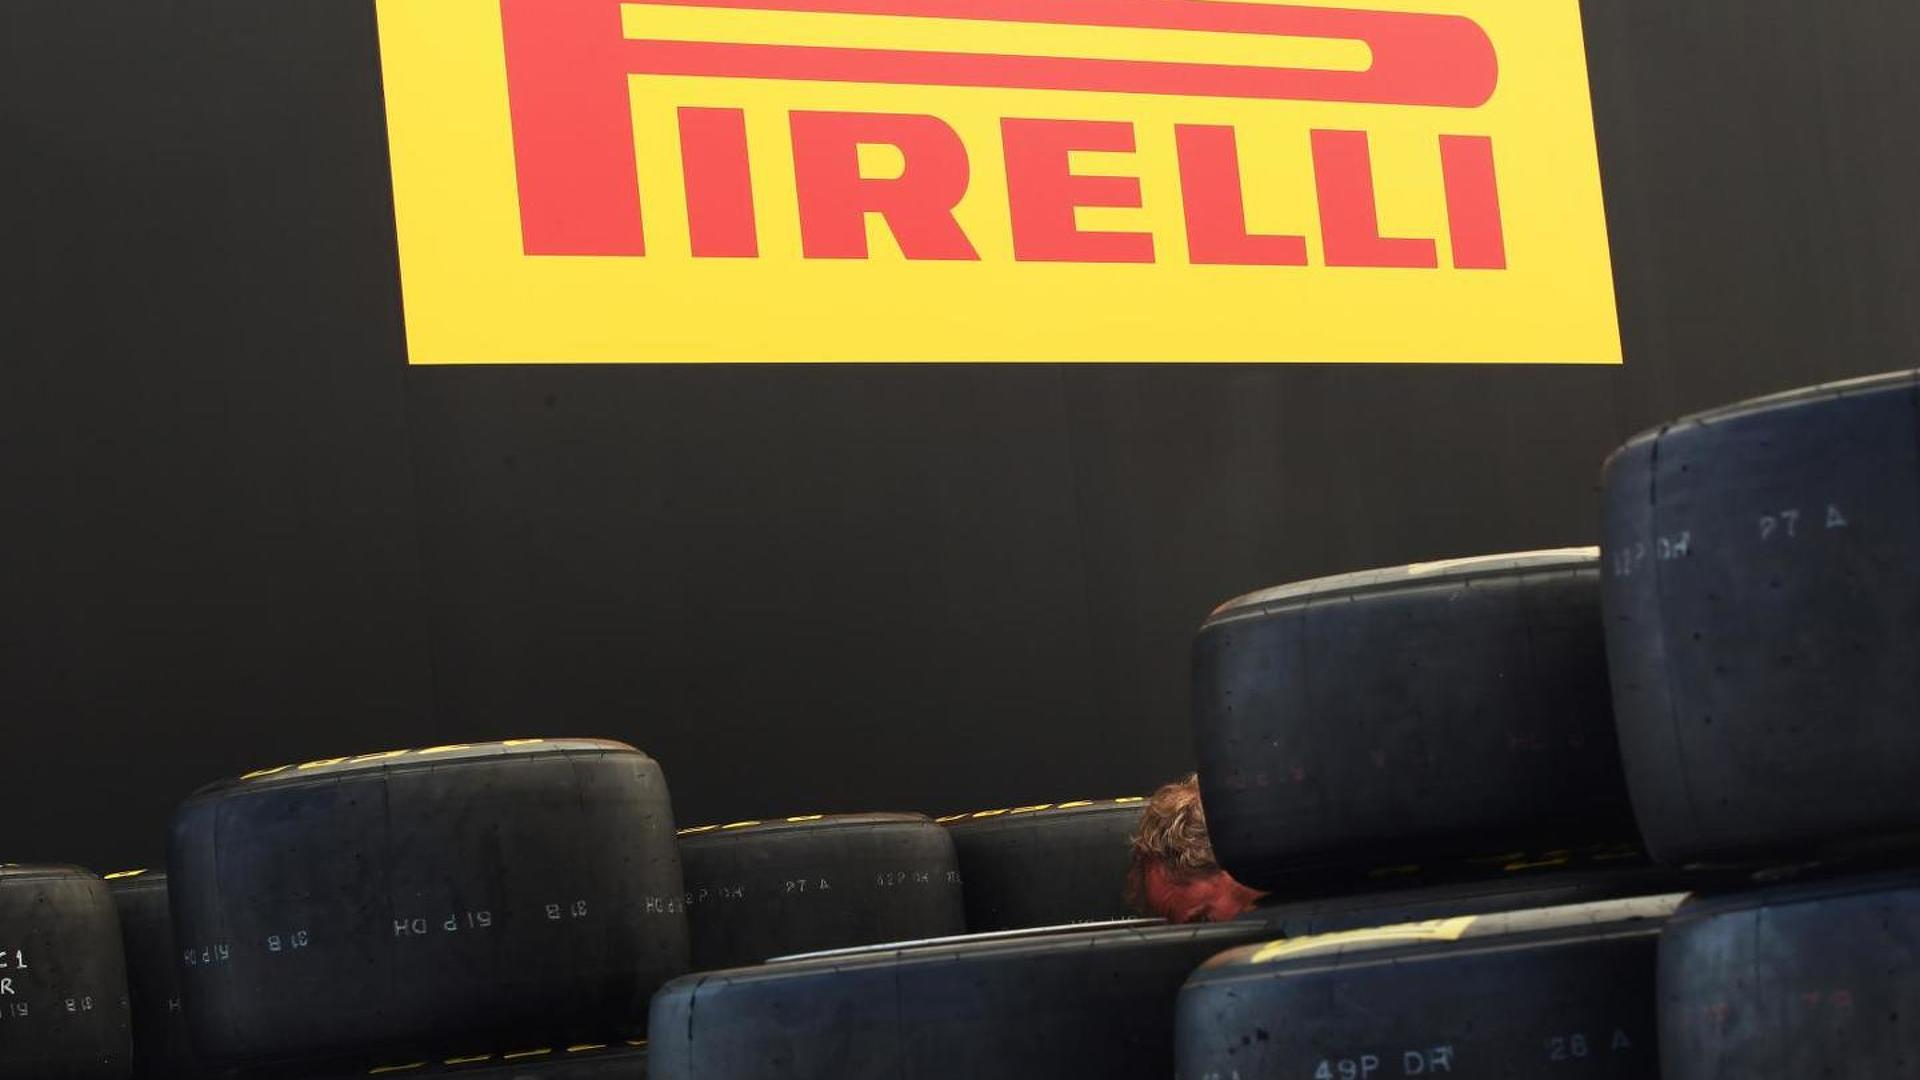 Pirelli to sponsor two grands prix in 2014